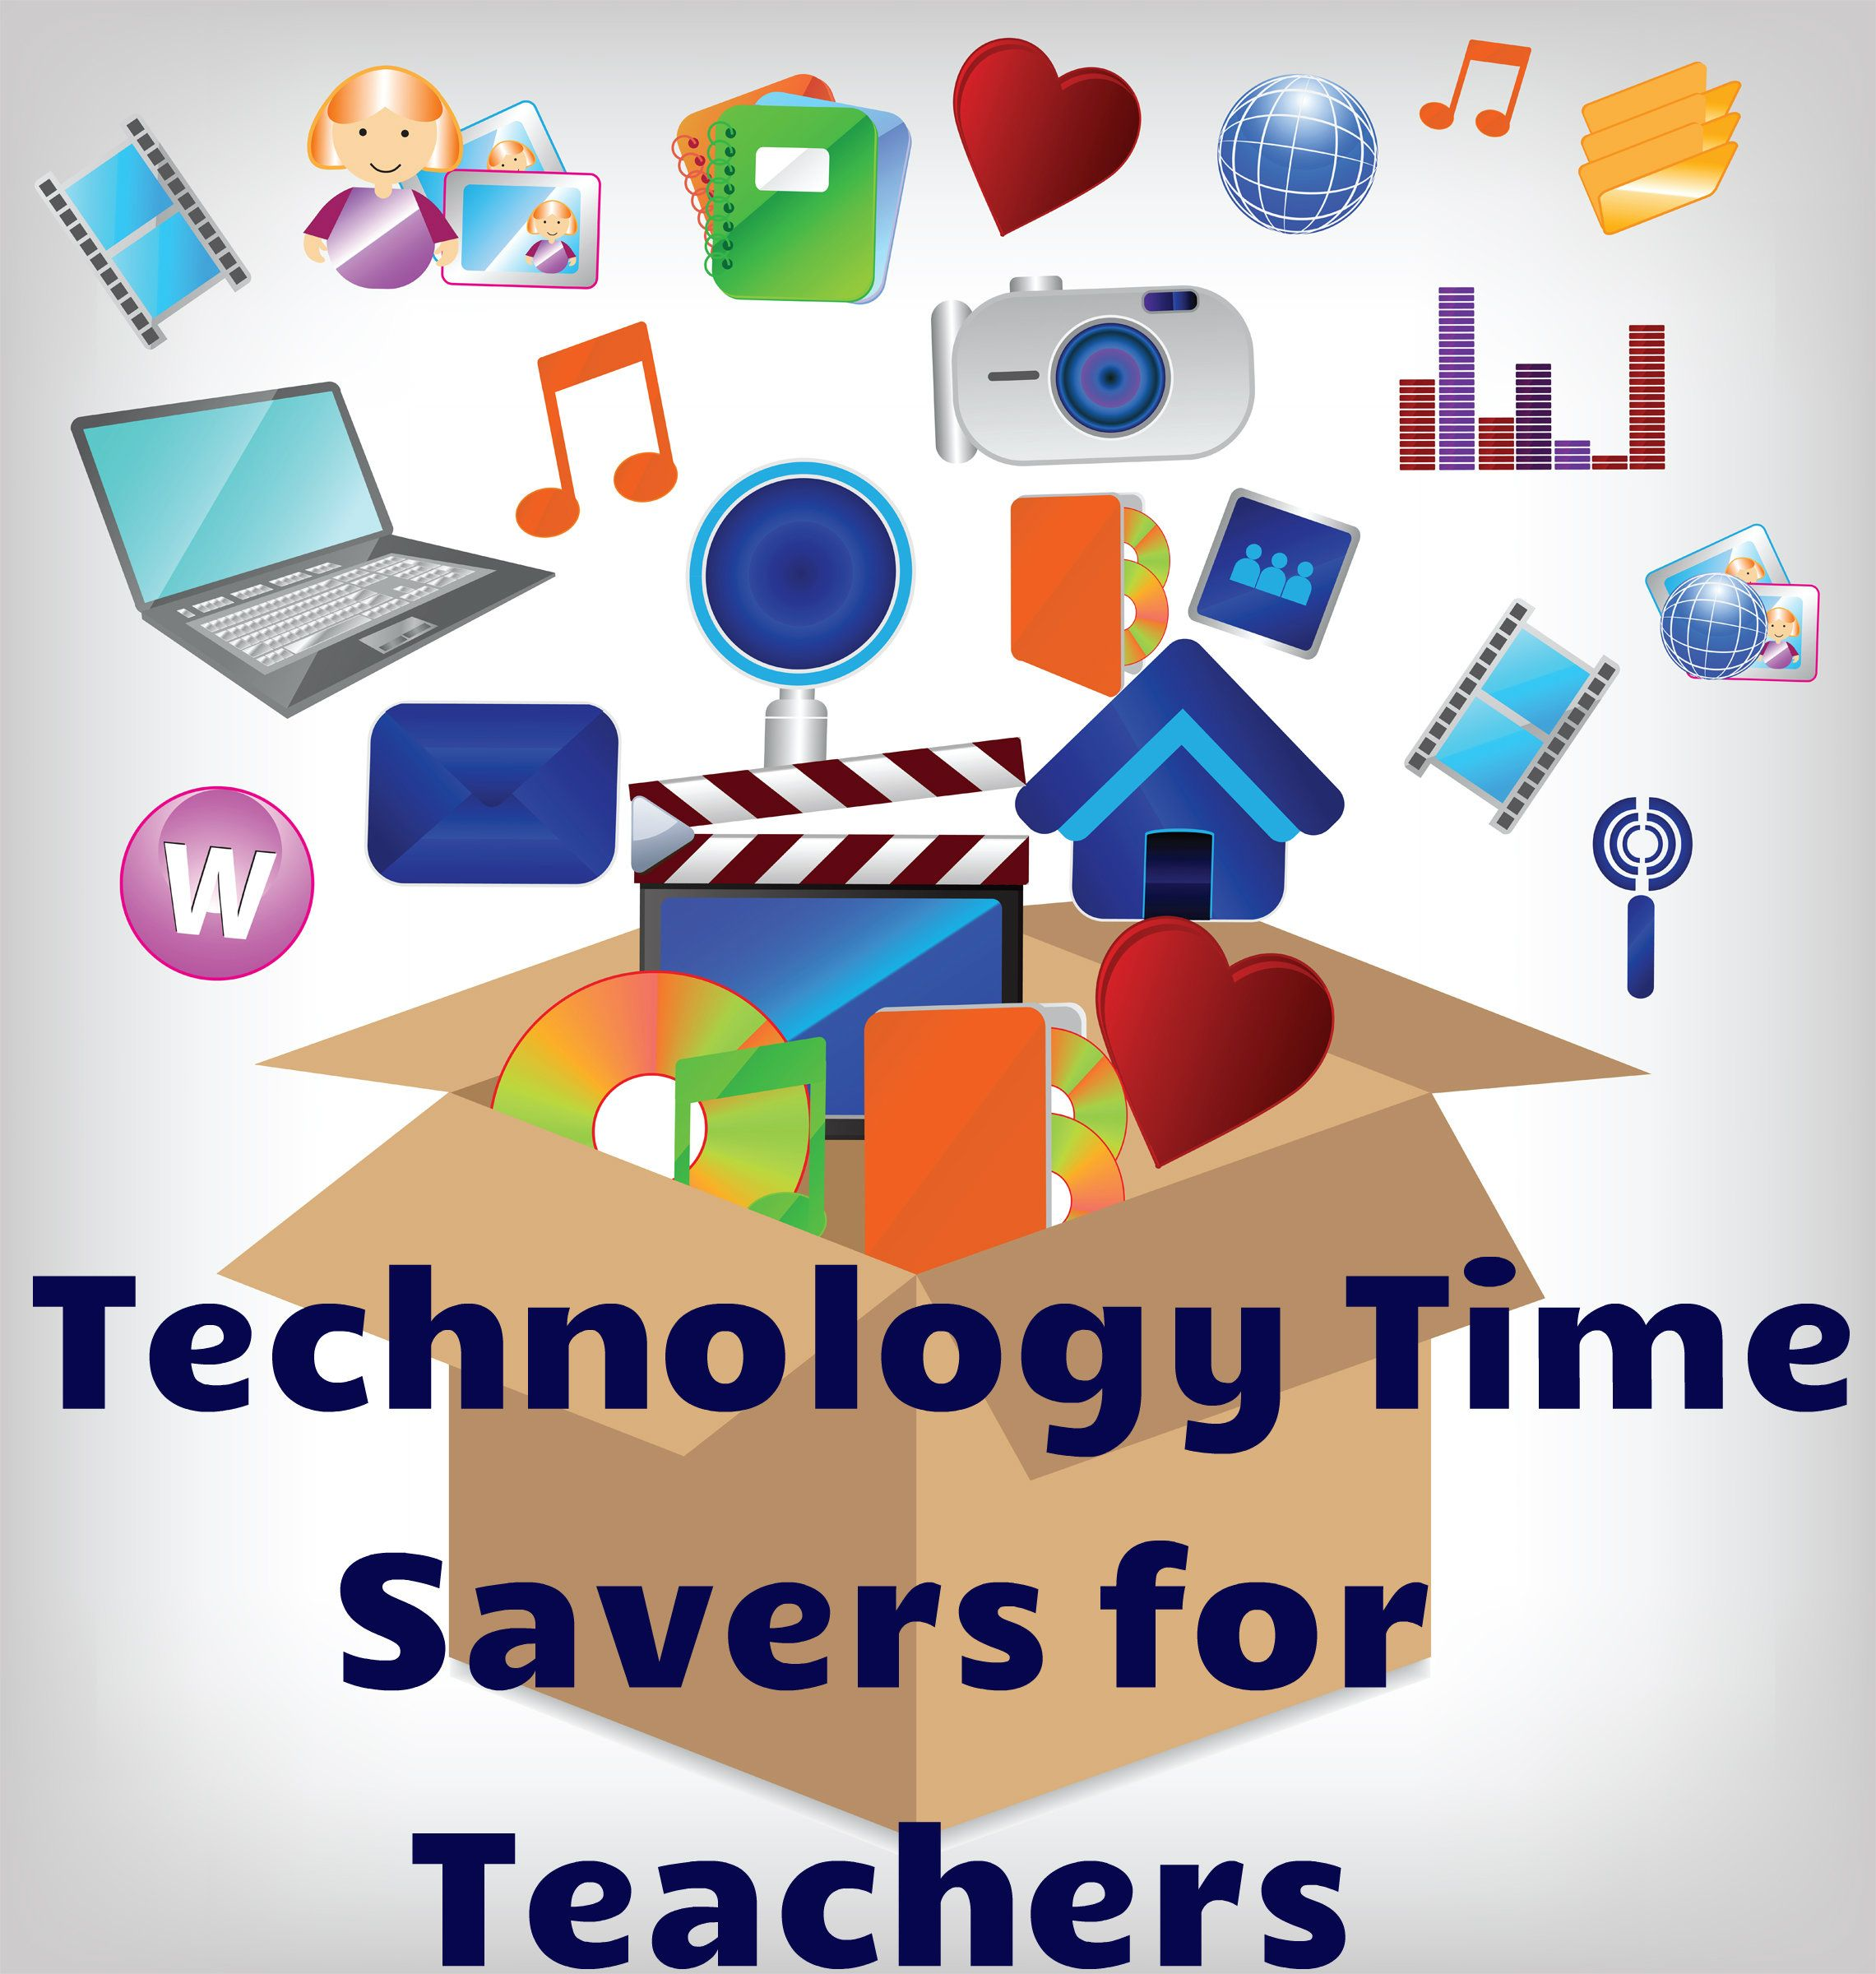 Time Management And Technology: Technology Time Savers For Teachers! Great Tips To Make